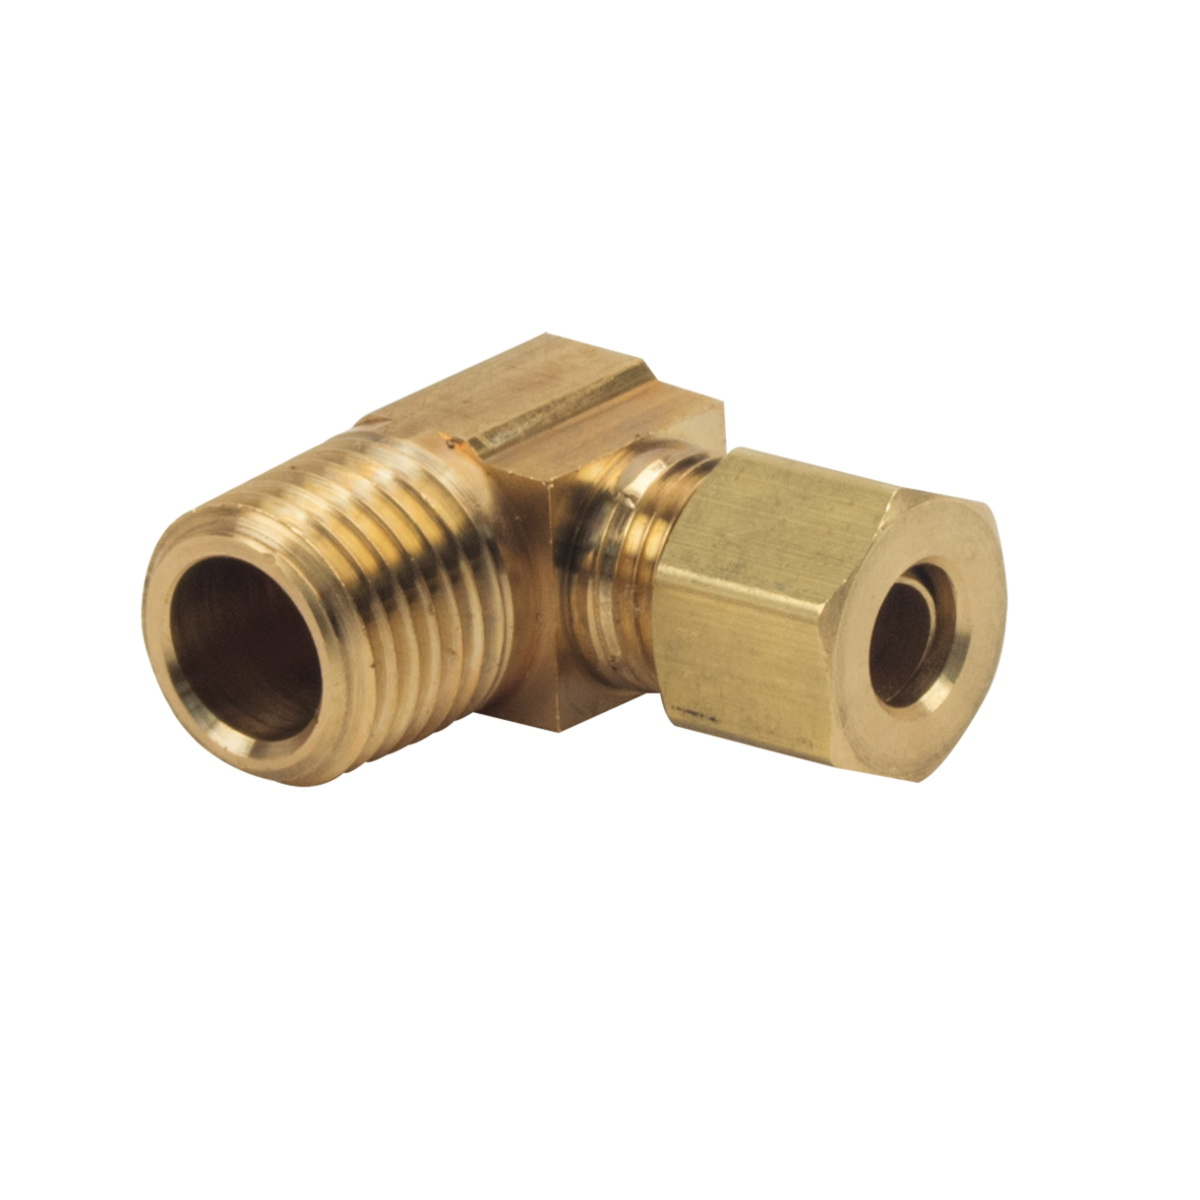 BrassCraft® 69-6-6 Rough Brass Machined 90 deg Elbow, 3/8 in x 3/8 in, Compression x MIP